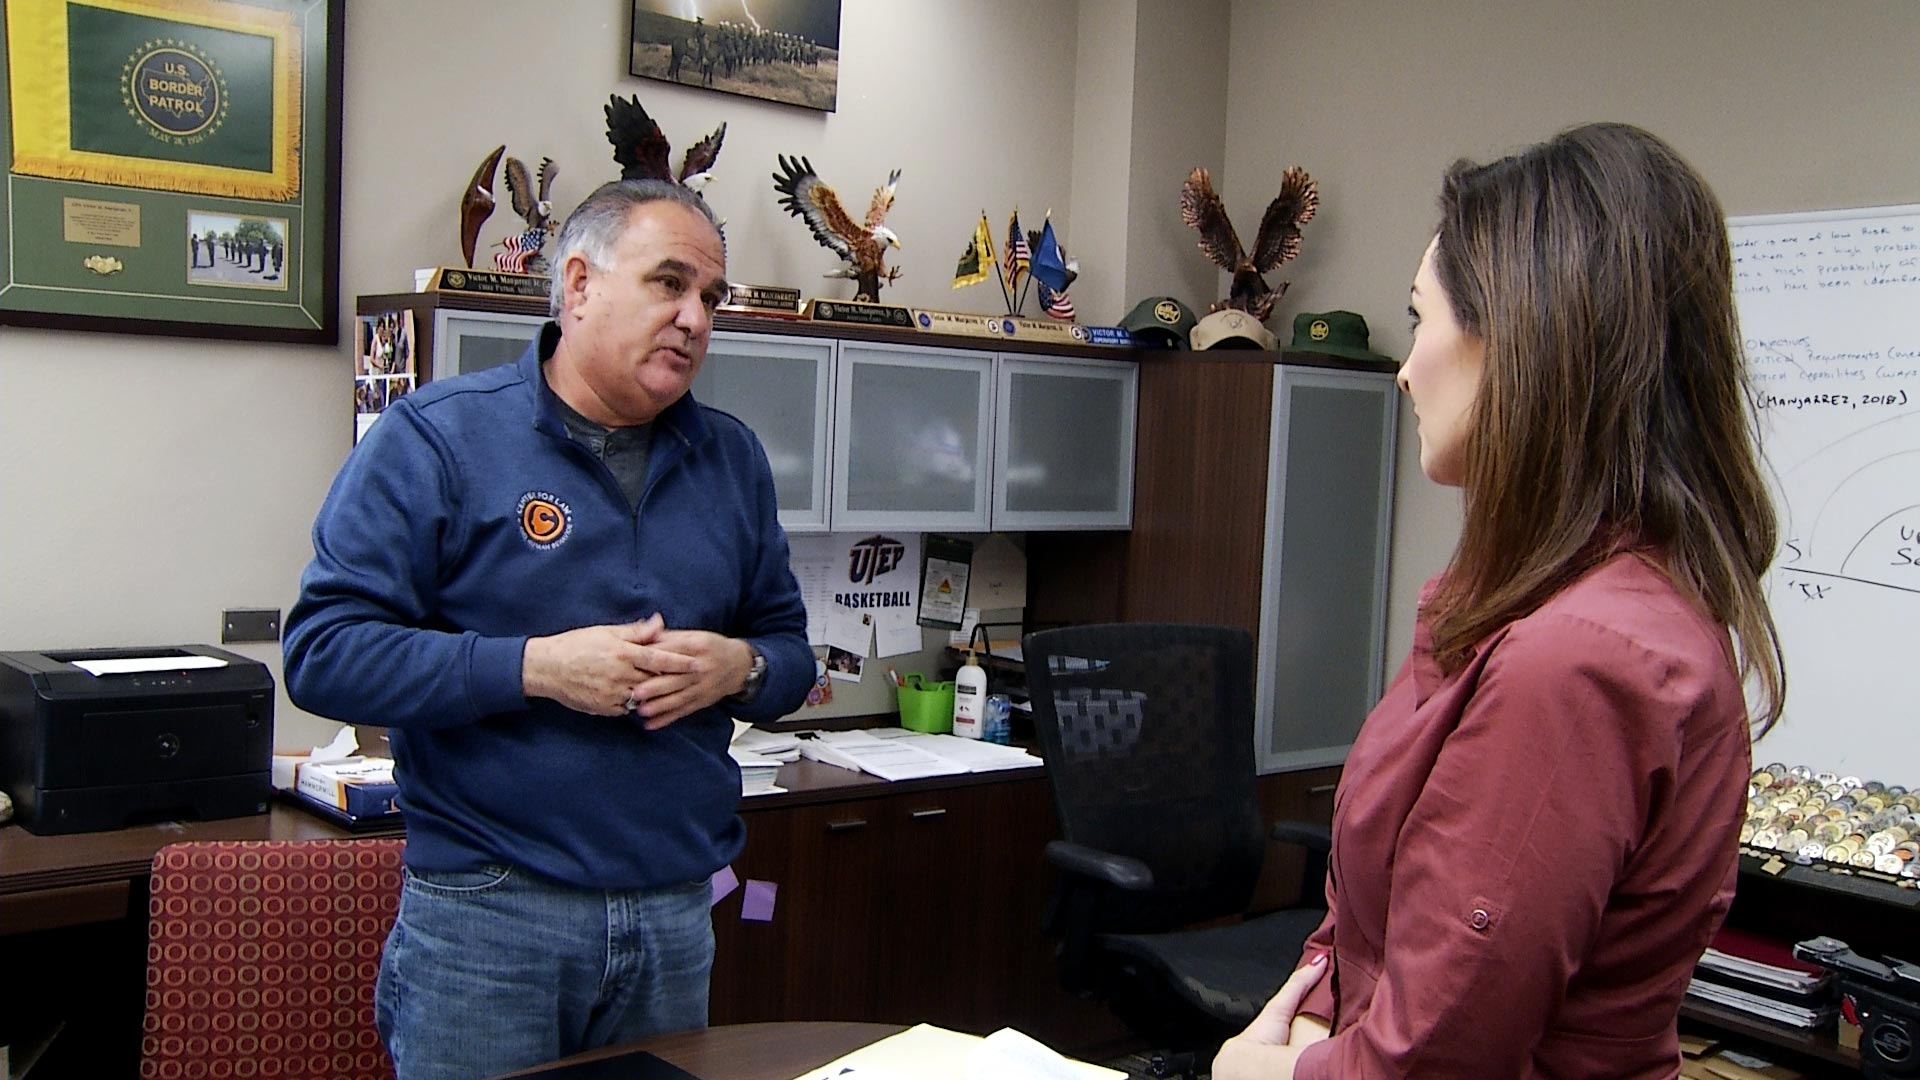 Former Tucson Sector Chief Victor Manjarrez speaks to Arizona 360 host Lorraine Rivera in his office at the University of Texas at El Paso on February 11, 2019. After retiring from the Border Patrol, Manjarrez became associate director for UTEP's Center for Law and Human Behavior.